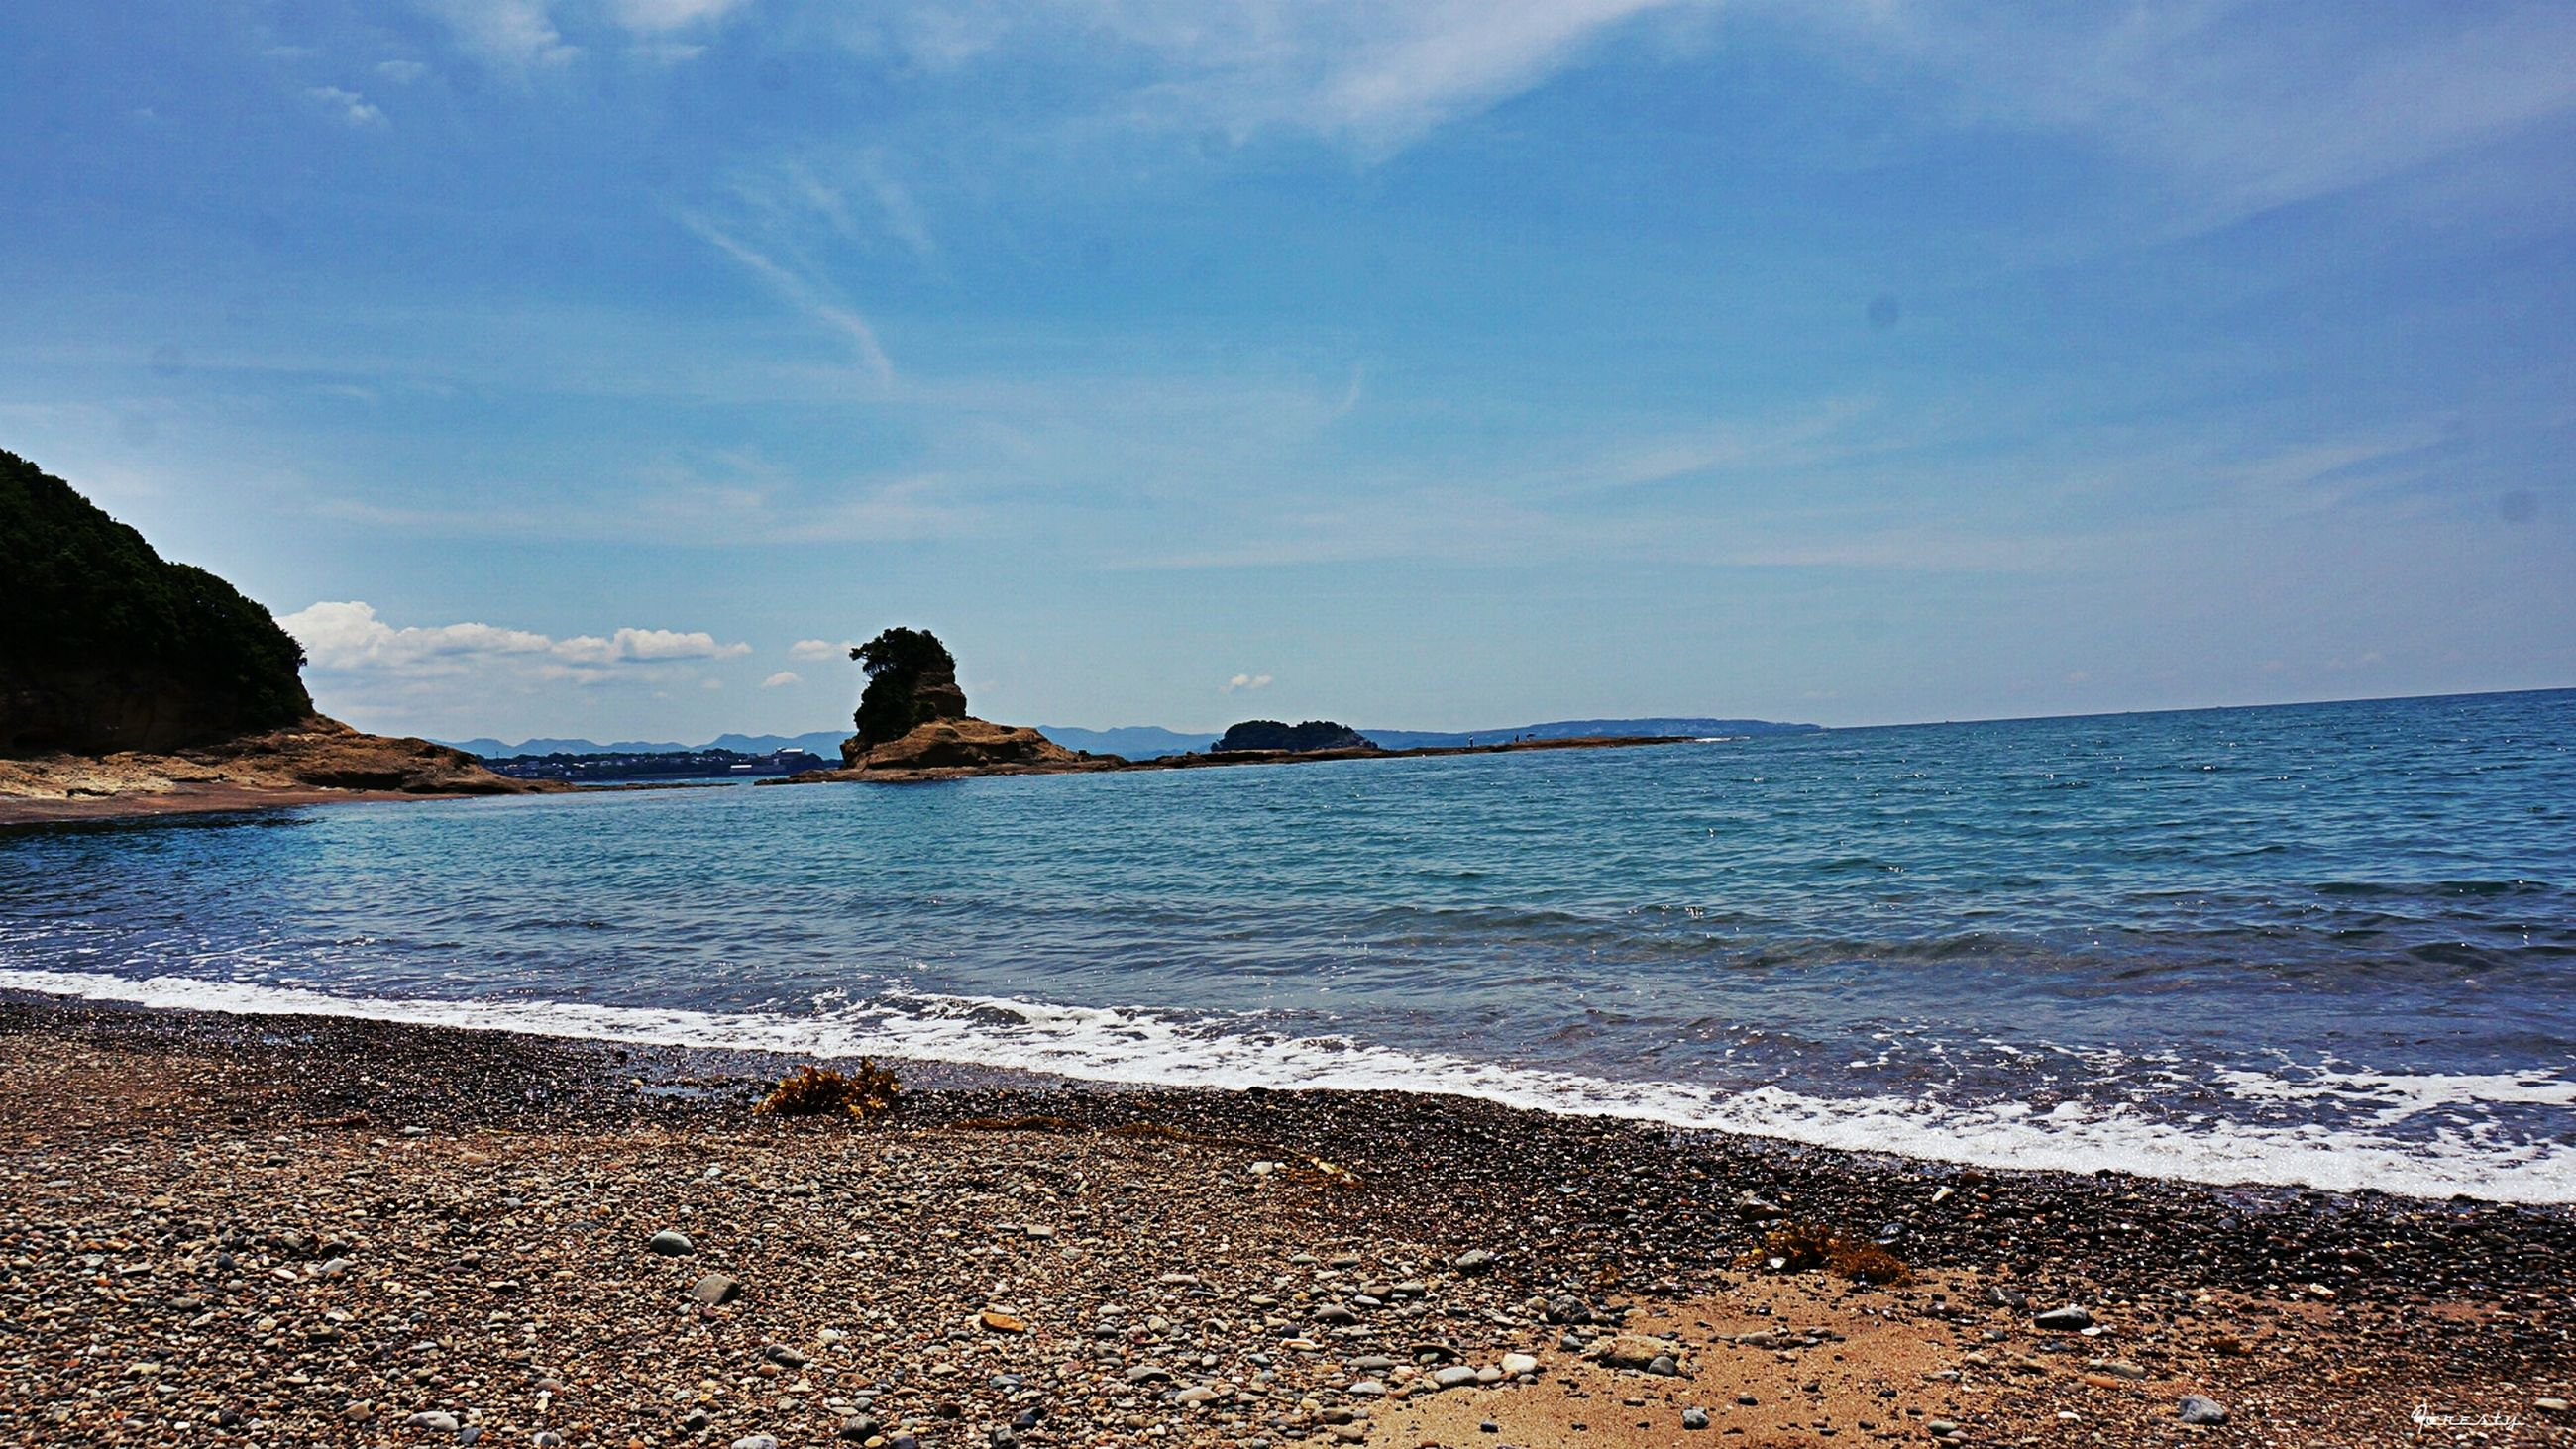 sea, water, beach, tranquil scene, shore, scenics, tranquility, sky, beauty in nature, sand, nature, horizon over water, coastline, idyllic, rock - object, blue, wave, mountain, outdoors, cloud - sky